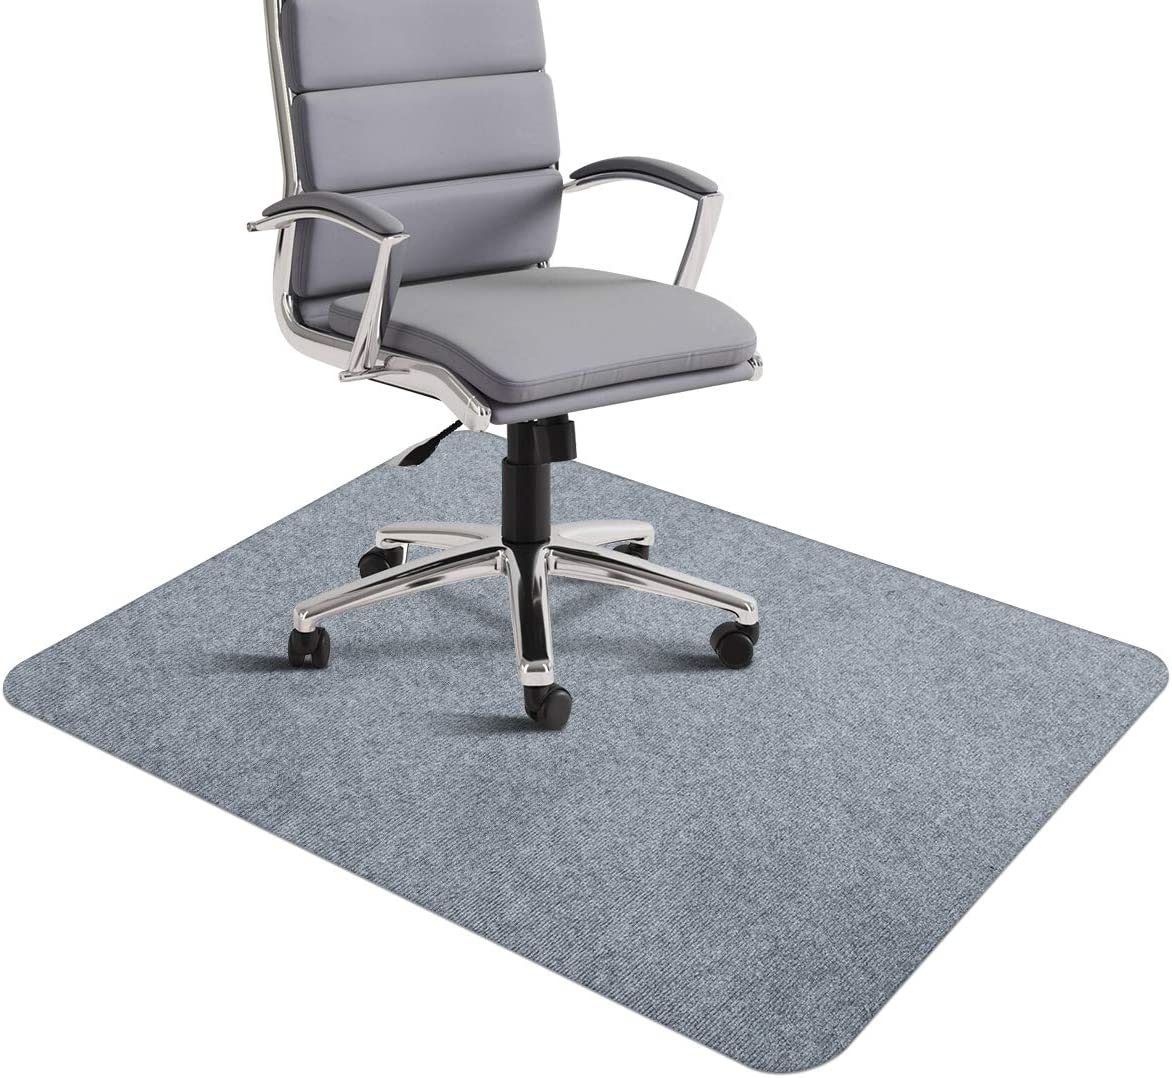 "Office Chair Mat, Desk Chair Mat for Hardwood Floors, 1/6"" Thick 35""x55"" Hard Floor Mat for Office, Multi-Purpose Protector Chair Carpet for Home (Light Gray)"